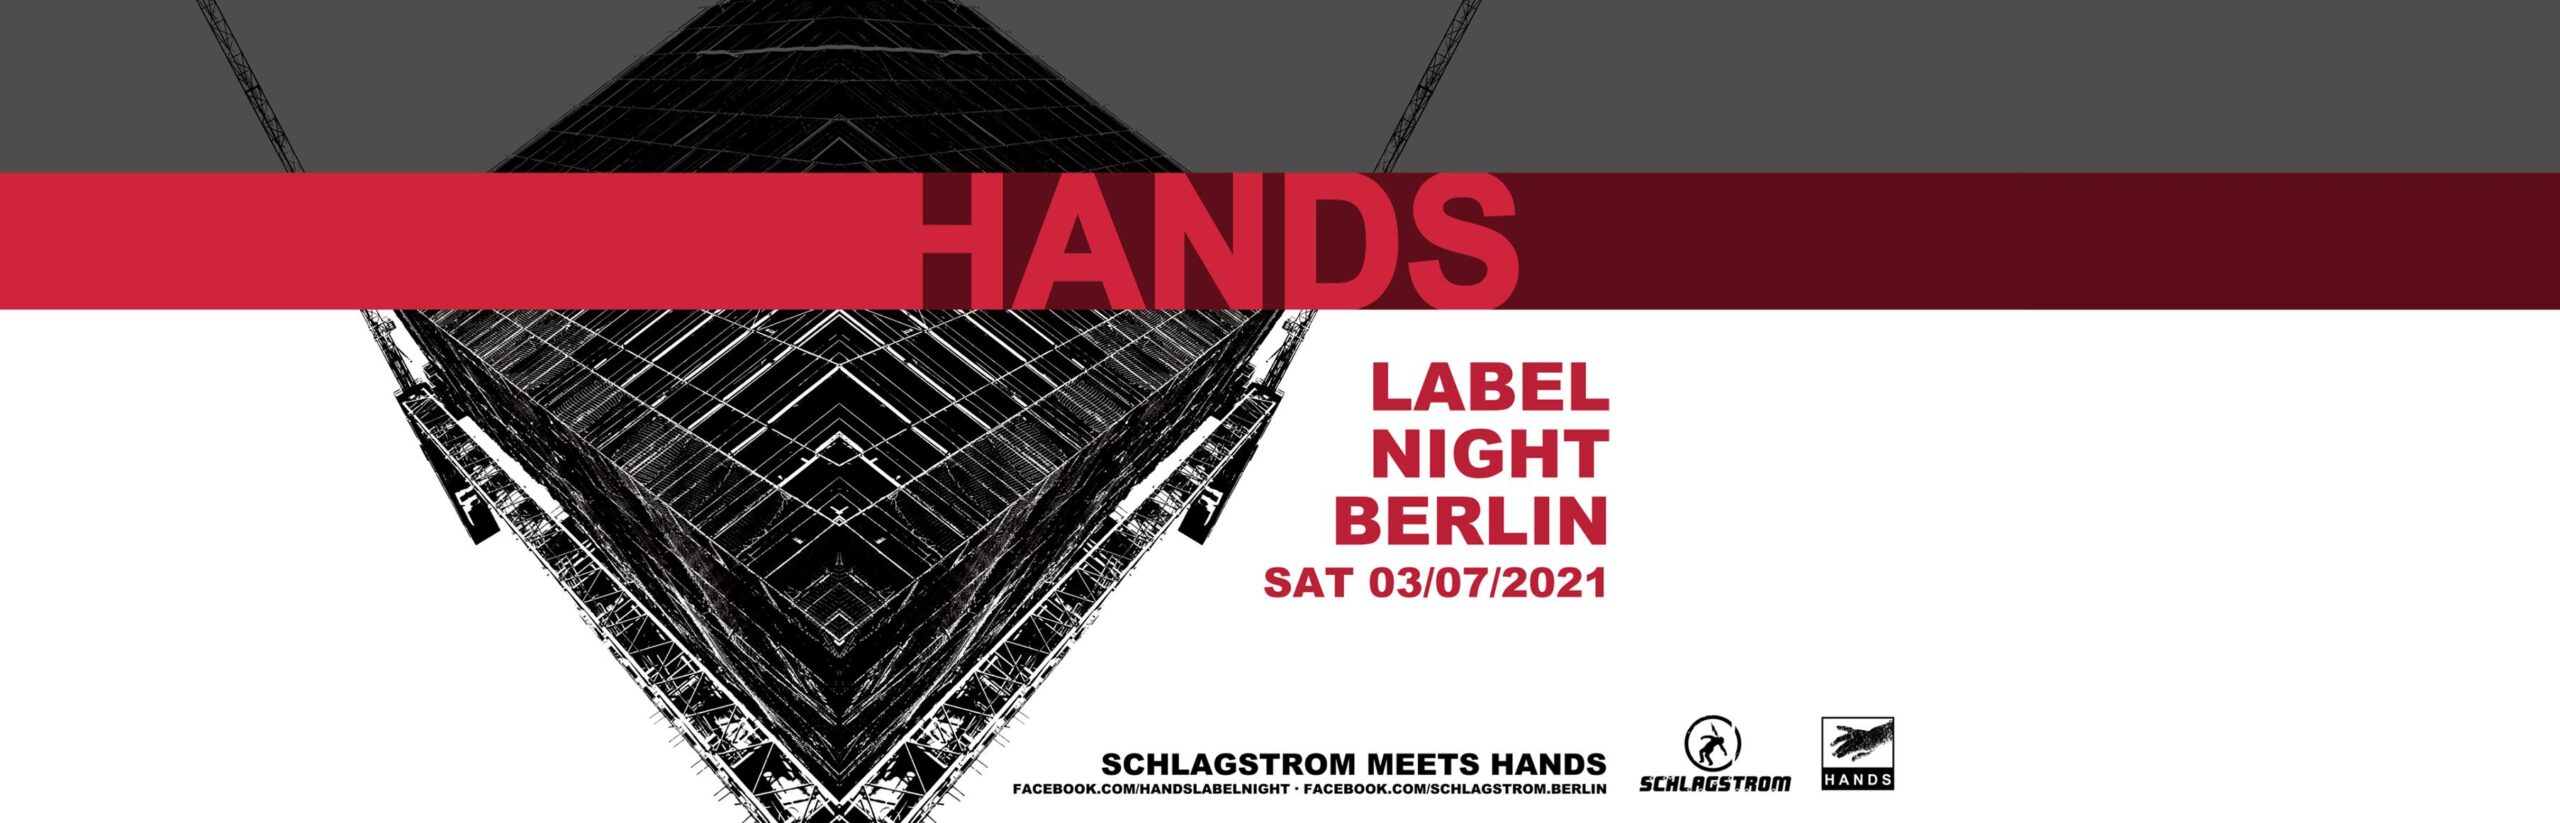 Schlagstrom meets HANDS